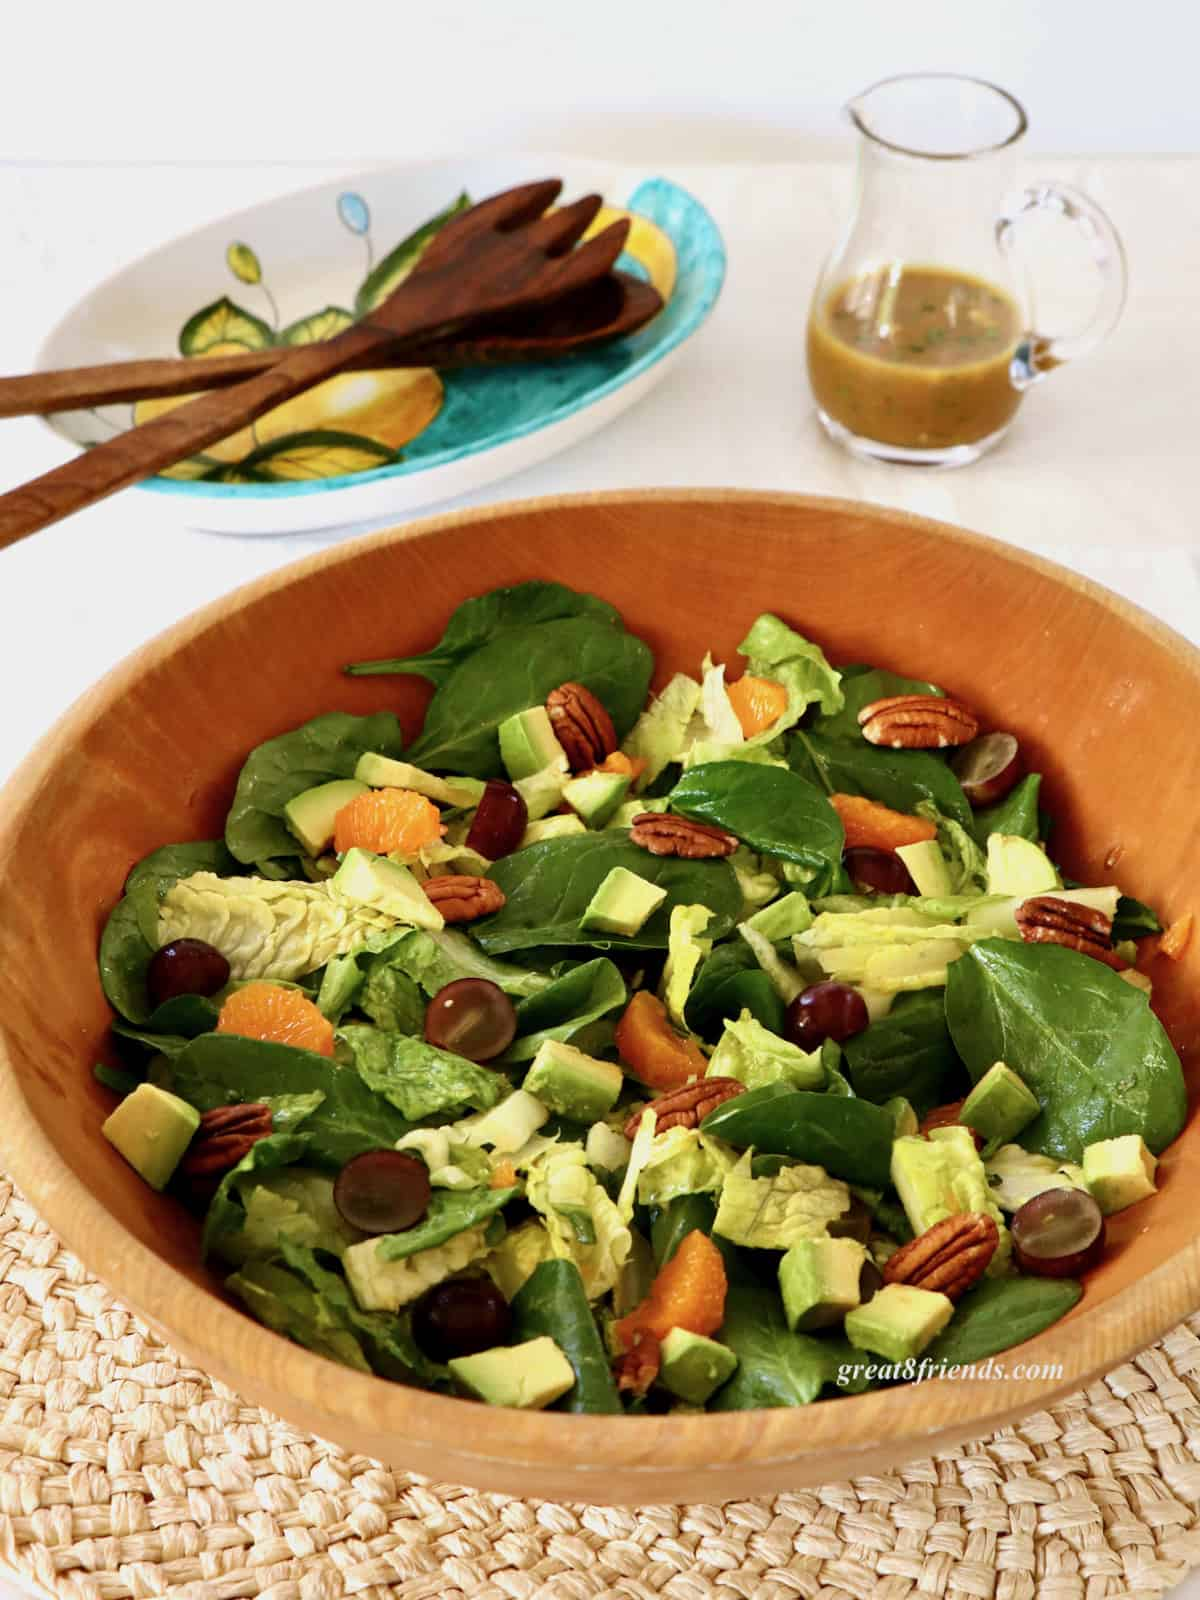 A curried spinach salad with tangerine slices, pecans, grapes and avocados in a wooden bowl with a pitcher of dressing and wooden salad servers in the background.